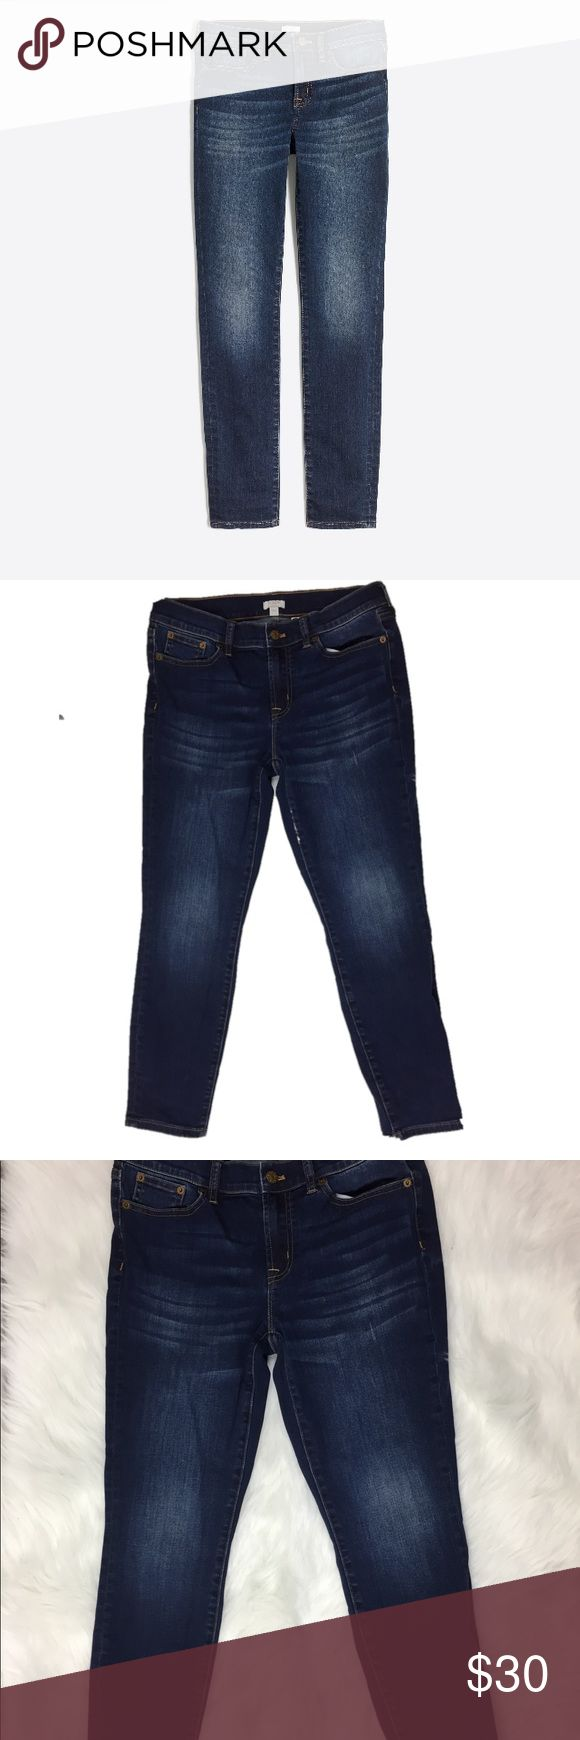 """J. Crew Patriotic Wash Skinny Jeans Size 28 PRODUCT DETAILS  Cotton/poly/elastane.  Sits at hip.  Fitted through hip and thigh, with a superskinny, straight leg.  26"""" inseam.  Traditional 5-pocket styling.  Machine wash.  Import.  Item E7293. J. Crew Jeans Skinny"""